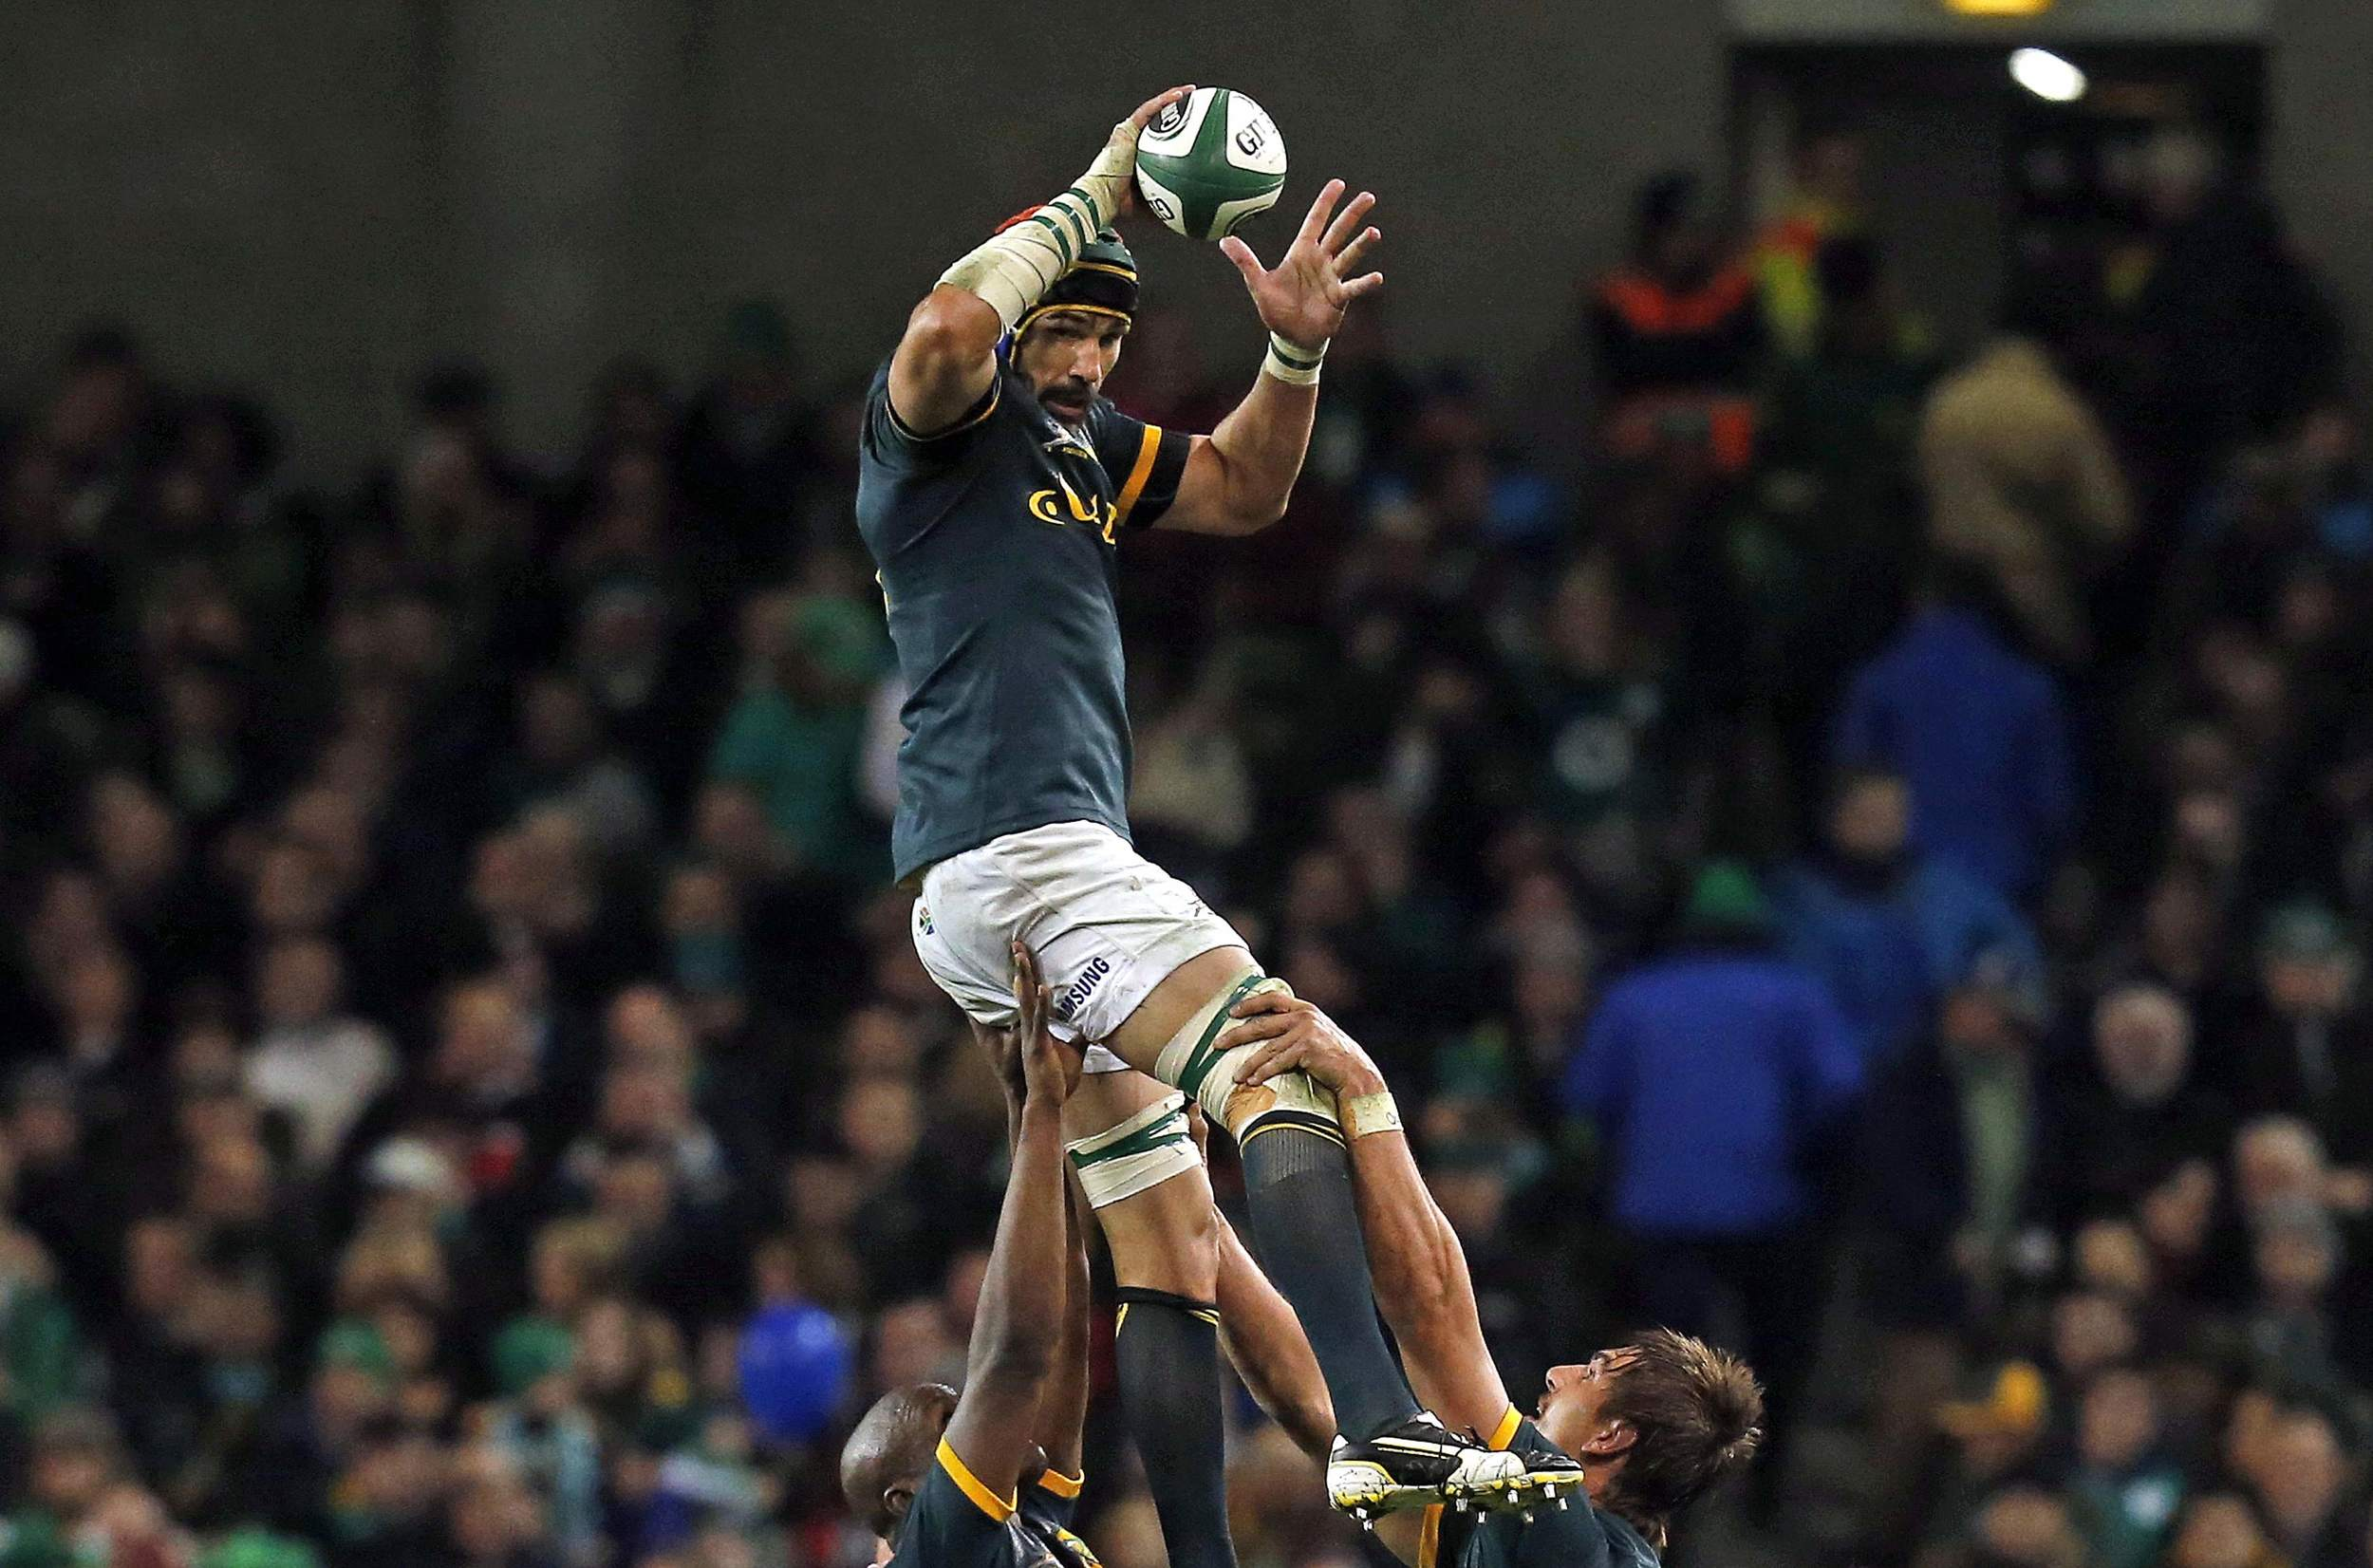 Victor Matfield wins a line out for South Africa against Ireland during their international test match at the Aviva Stadium in Dublin November 8, 2014. Despite his age, Matfield remains one of the world's leading locks.  Image supplied by Action Imag es/ Cathal McNaughton